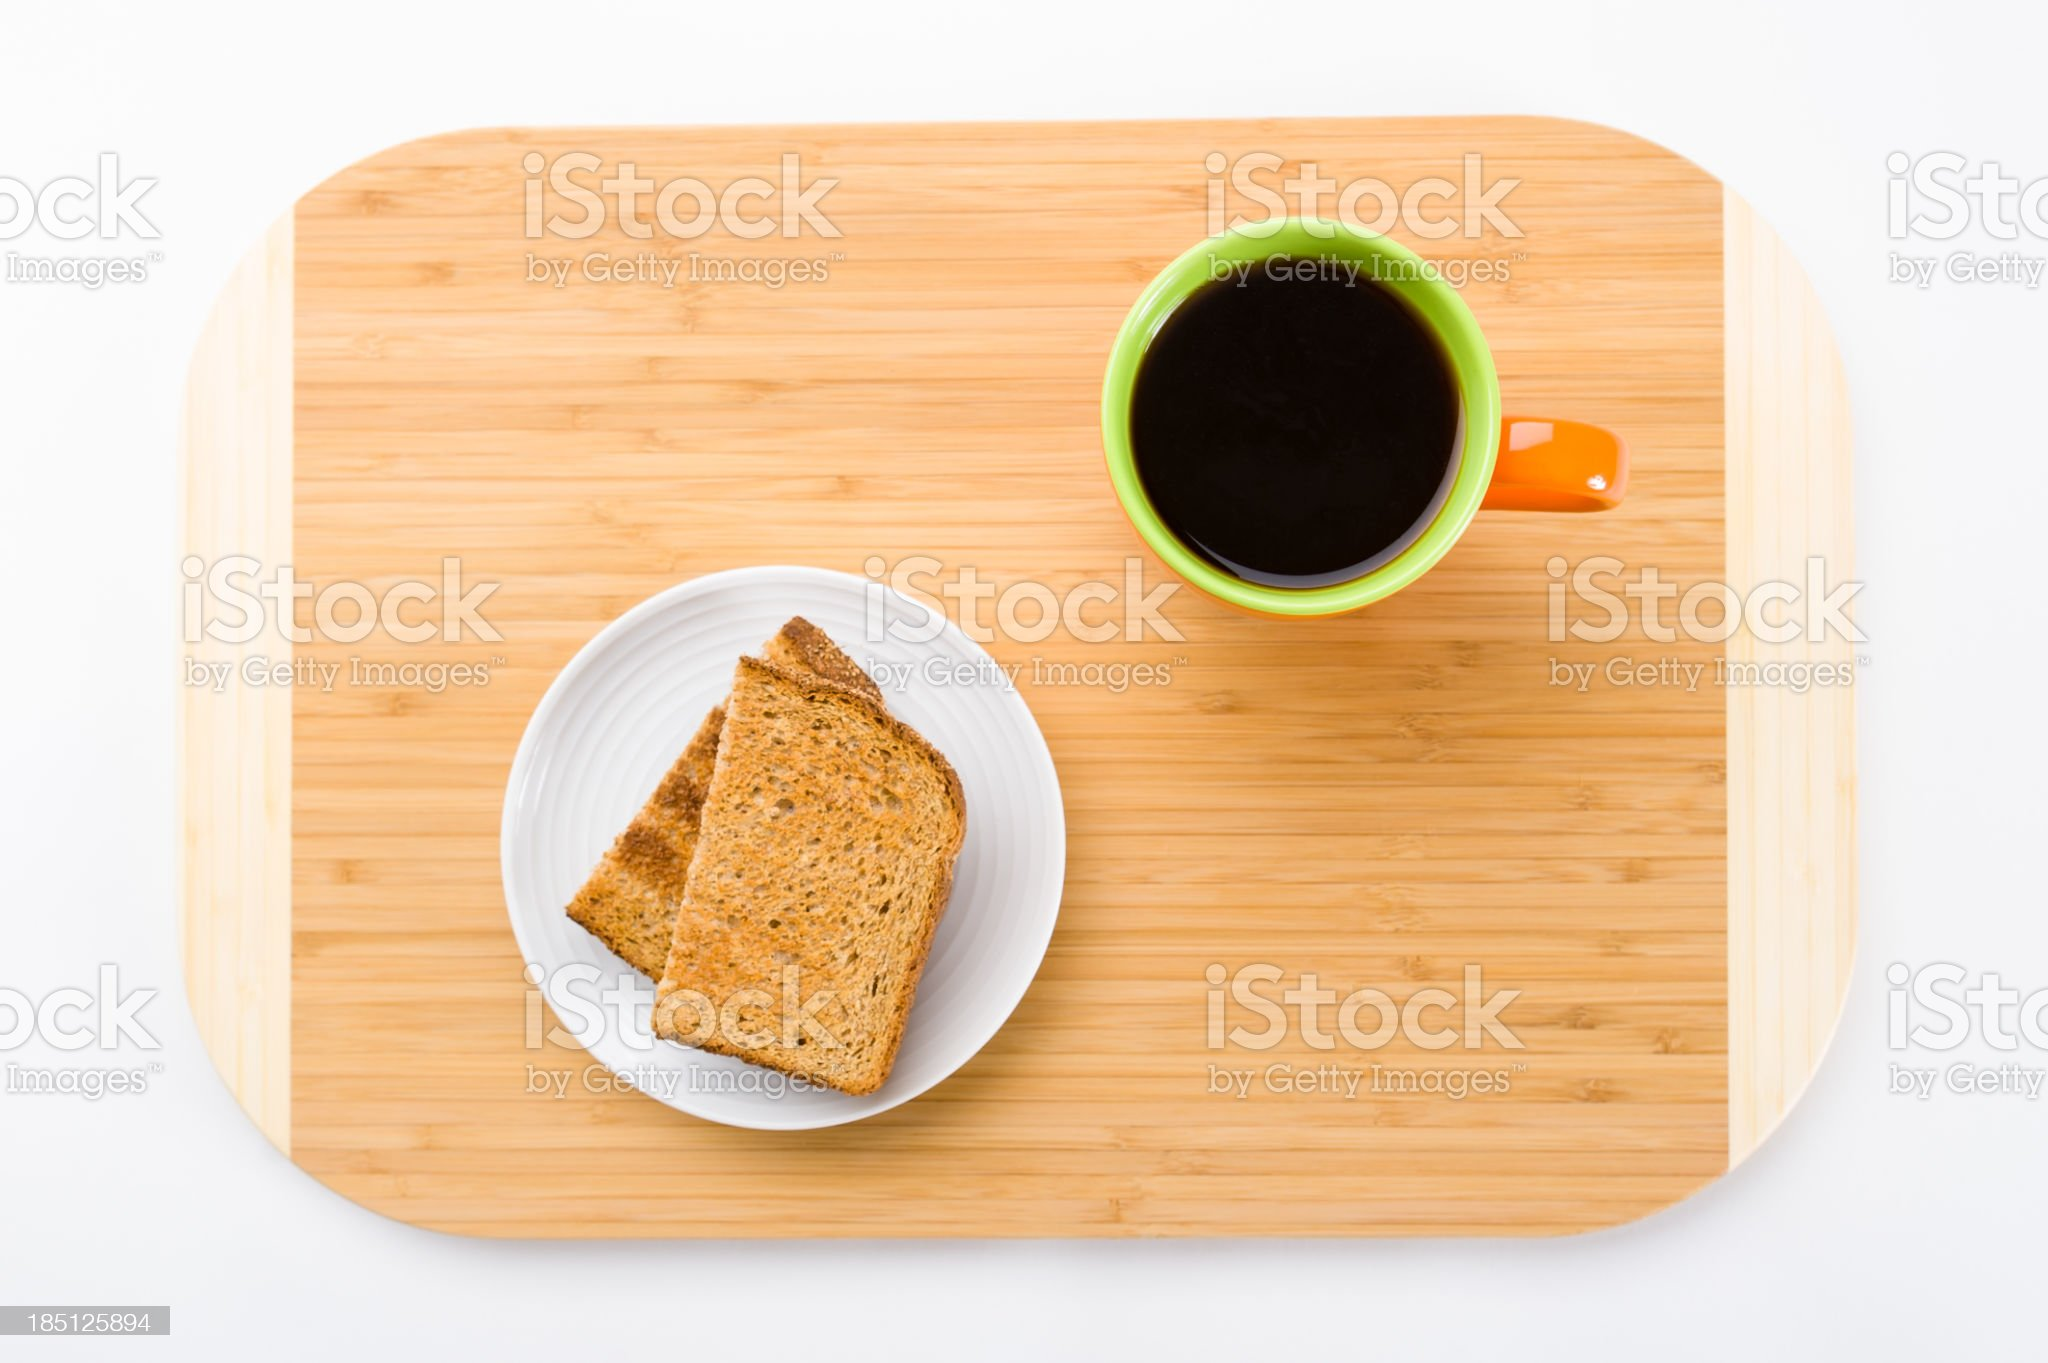 Toast and Coffee Breakfast royalty-free stock photo